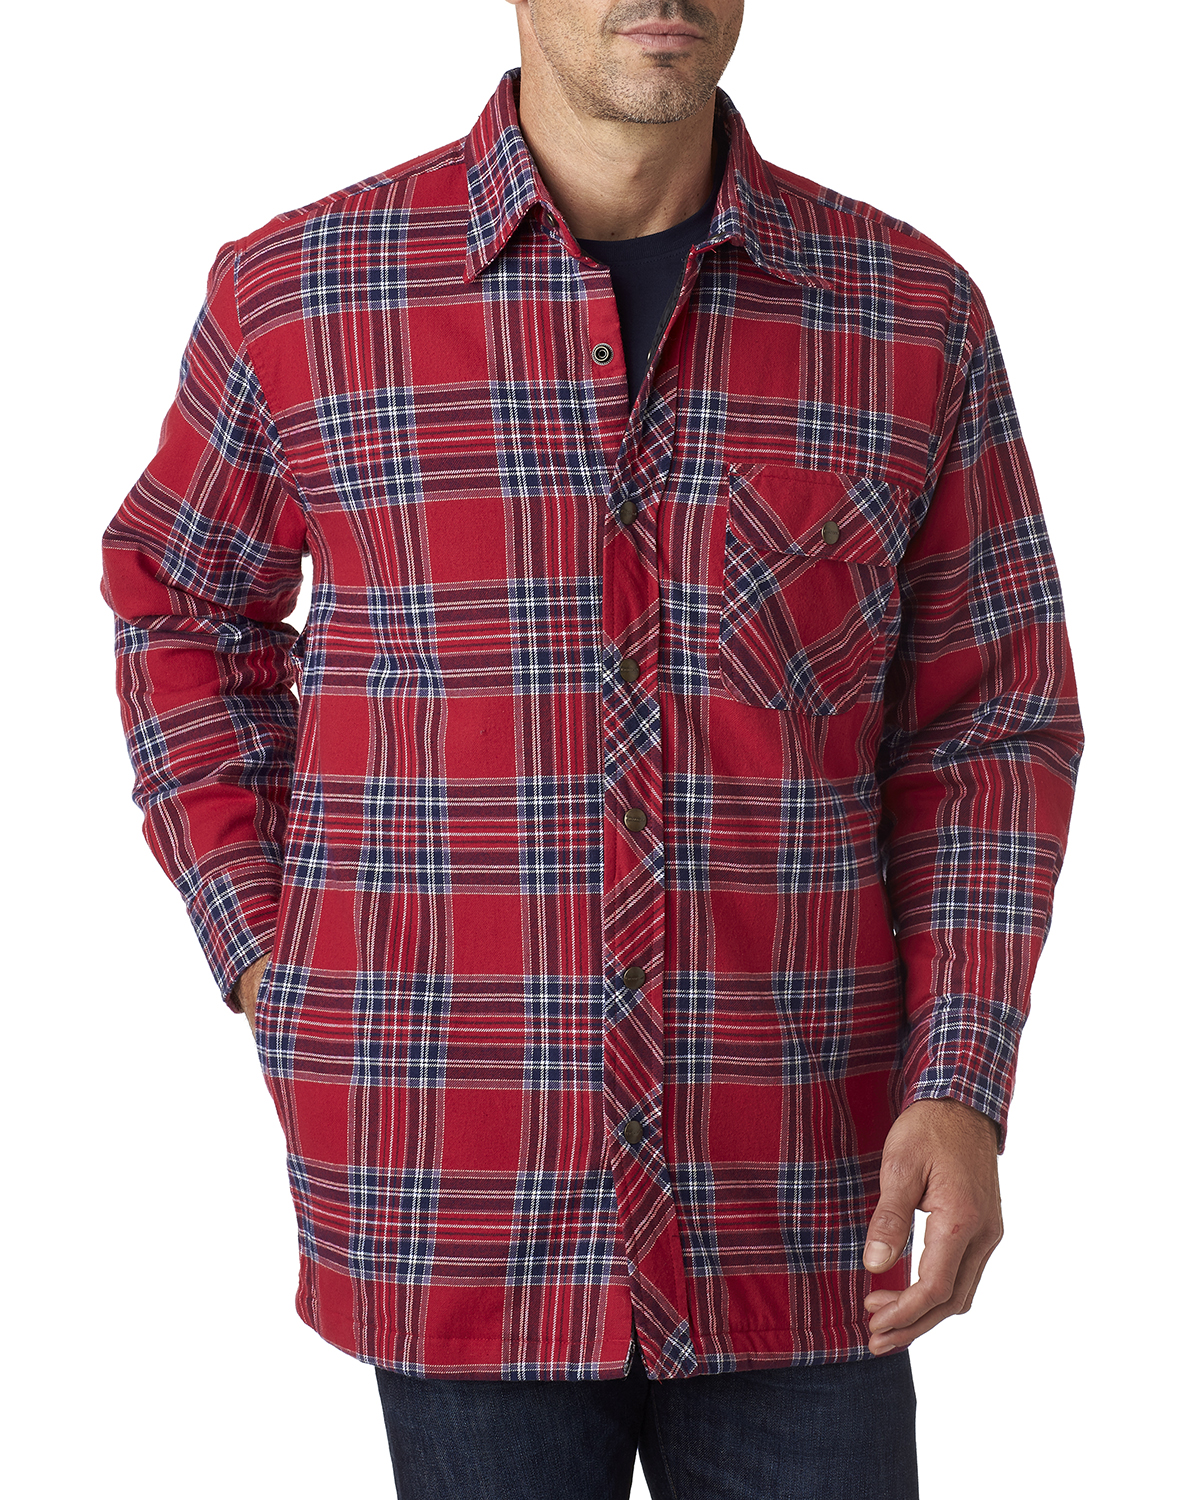 6dfa8bc0e4eb Backpacker BP7002 - Men s Flannel Shirt Jacket with Quilt Lining ...